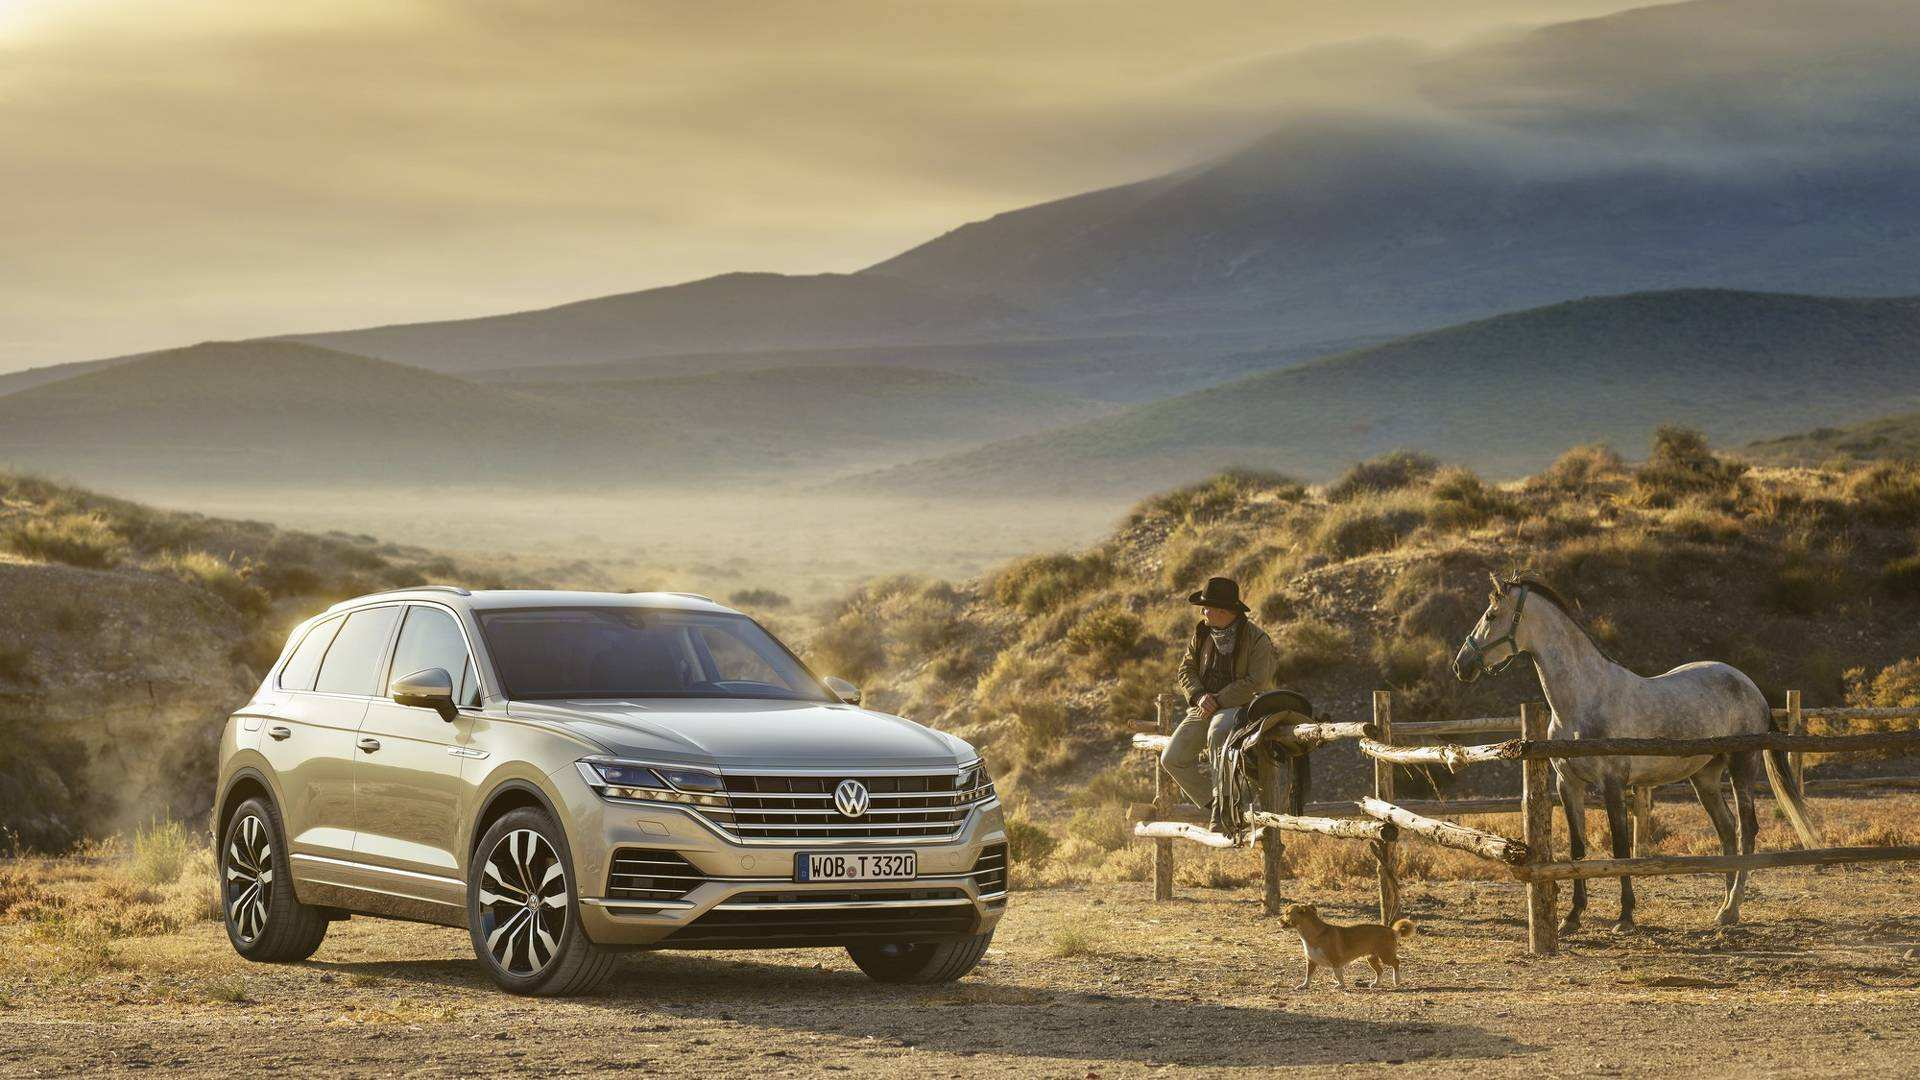 30 All New New Volkswagen Touareg 2020 Engine with New Volkswagen Touareg 2020